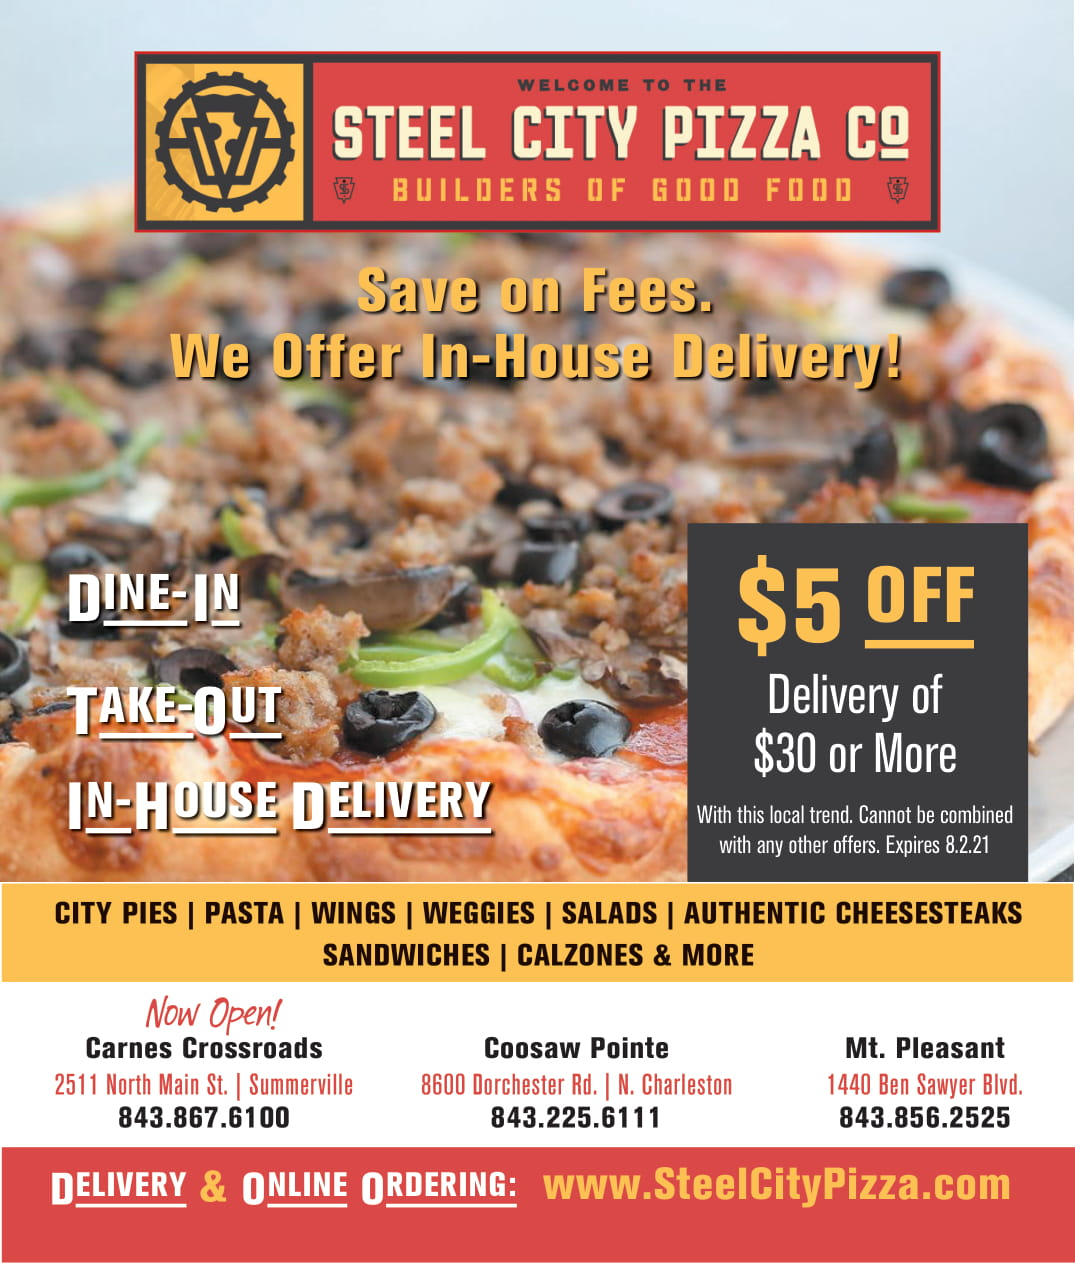 0621 Steel City Pizza Co Half Page converted 1